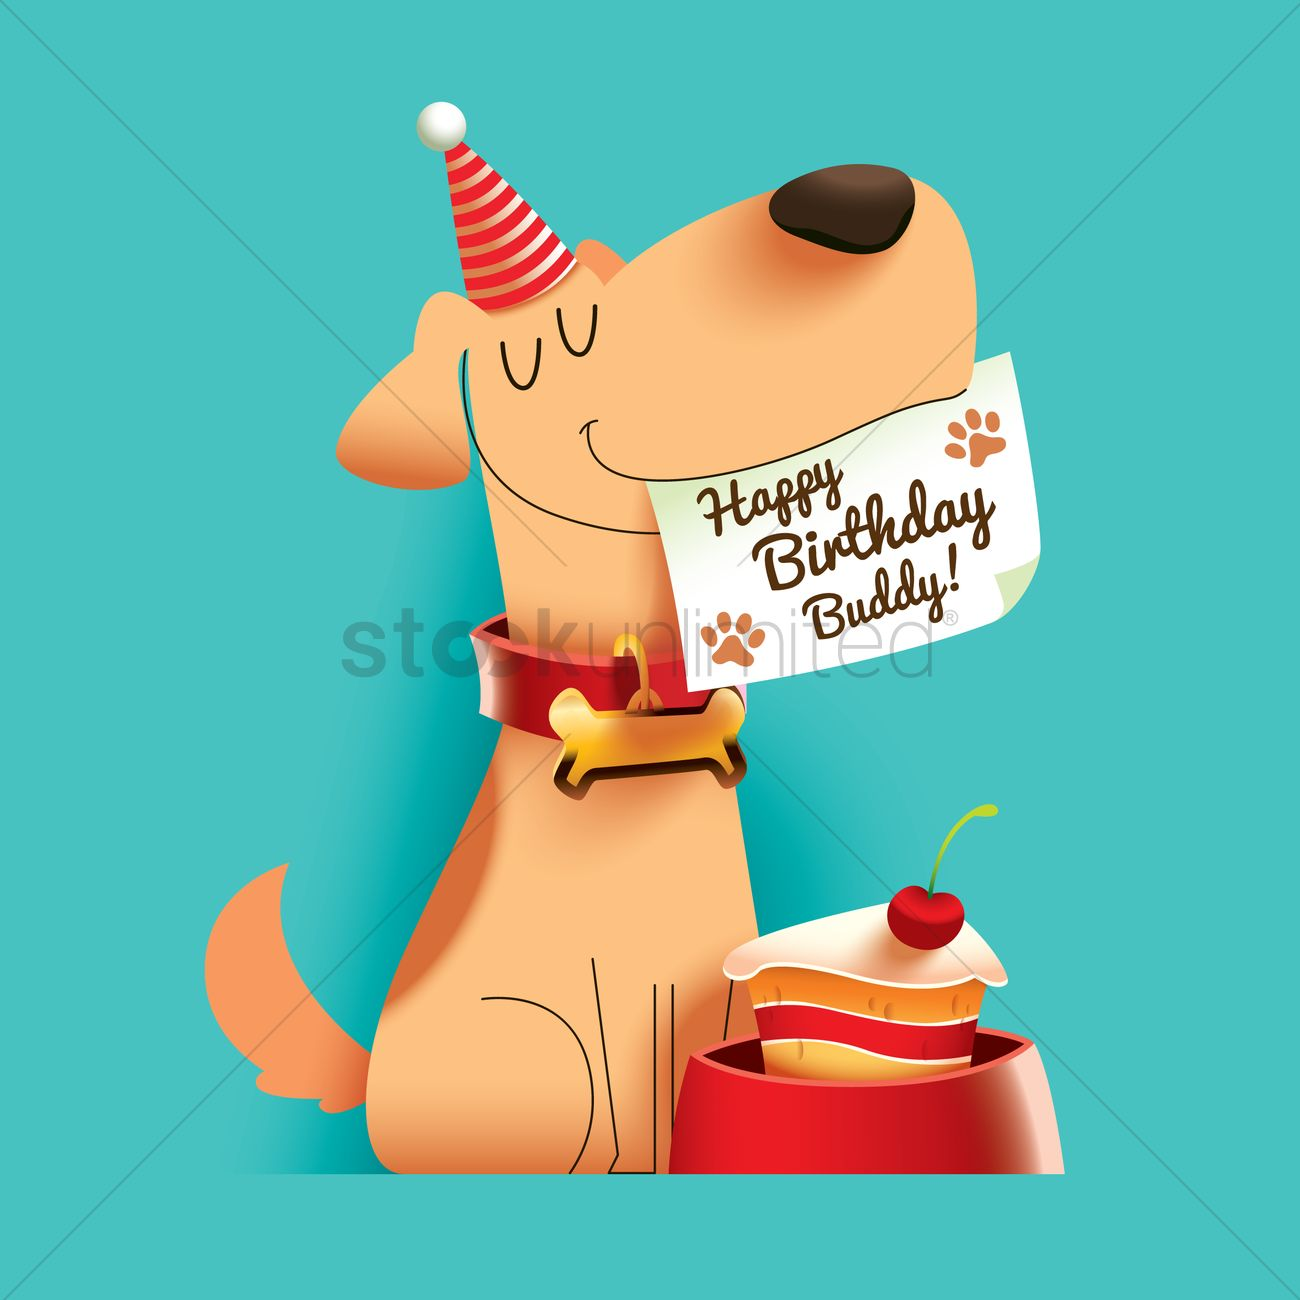 dog with happy birthday buddy note vector image 1797678 dog paw print vector art Dog Paw Print Silhouette